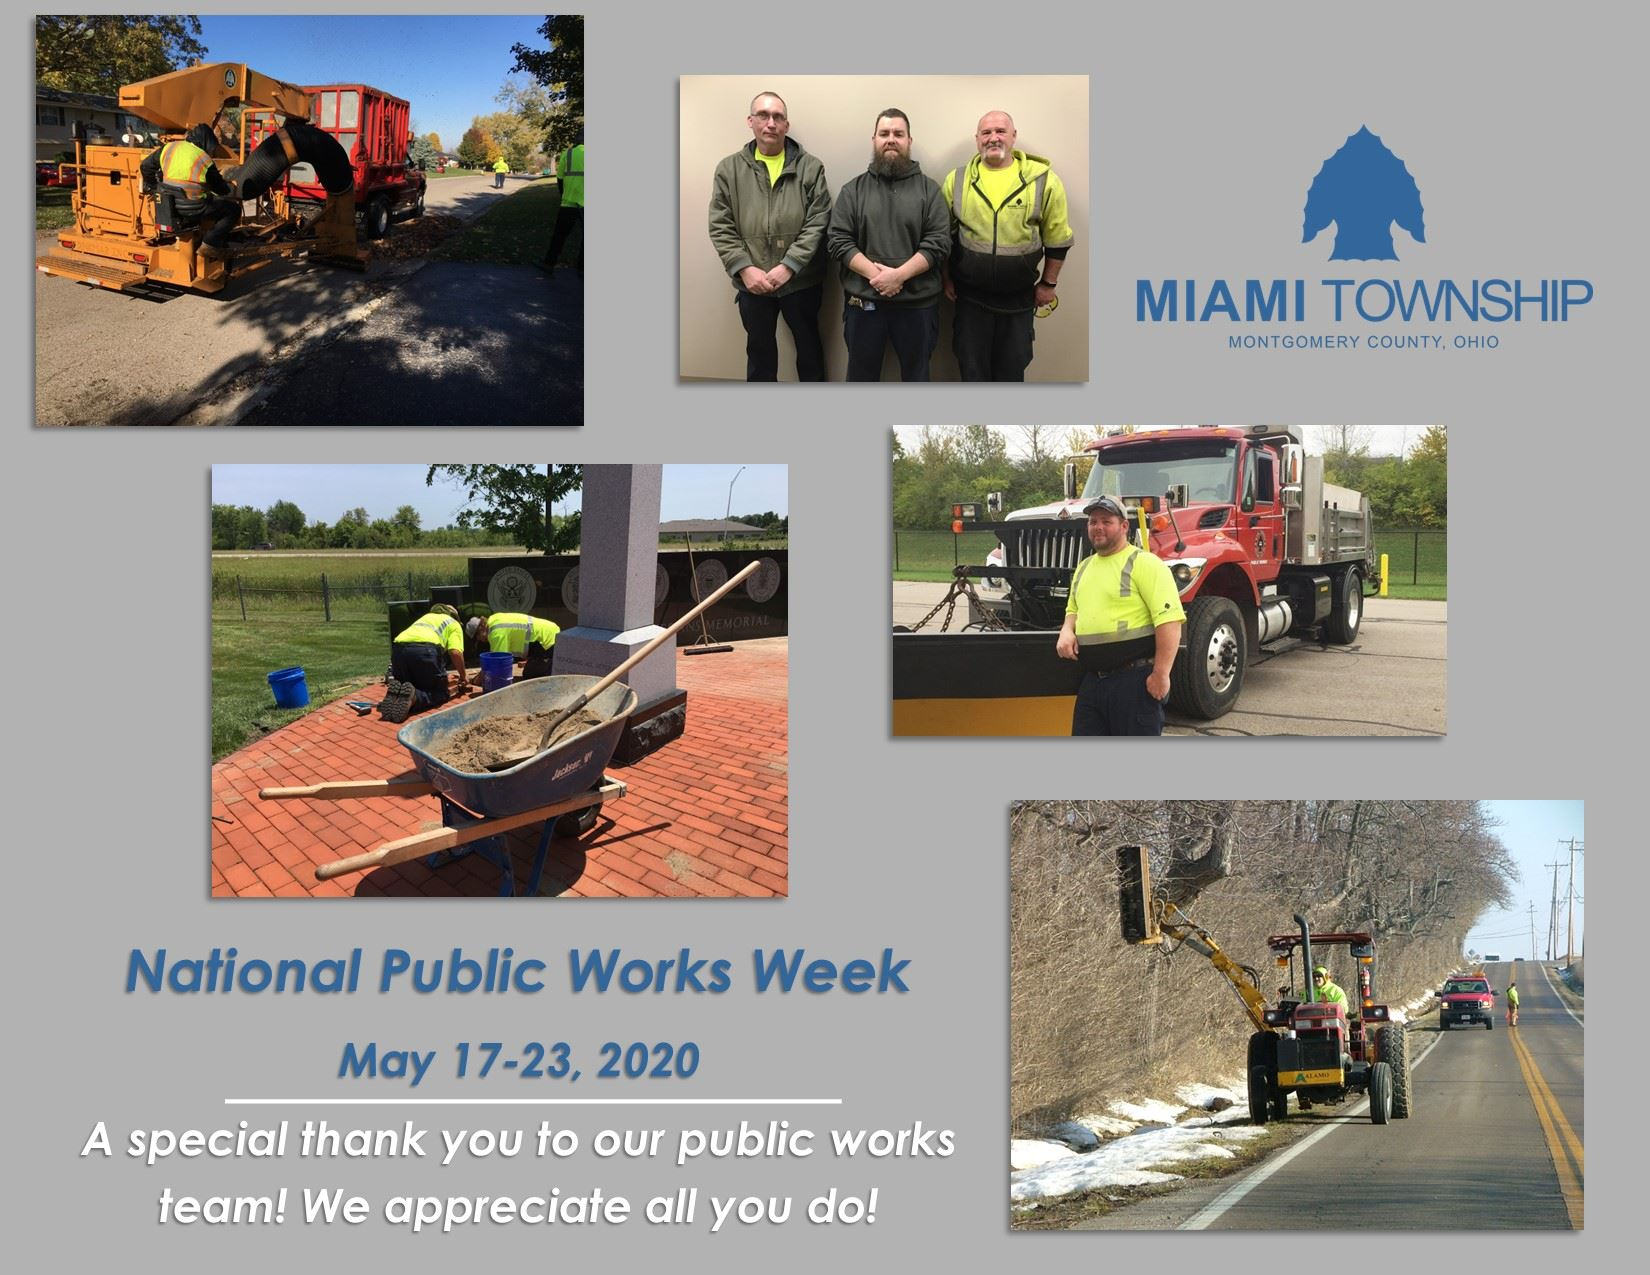 Public Works Week May 17-23 2020